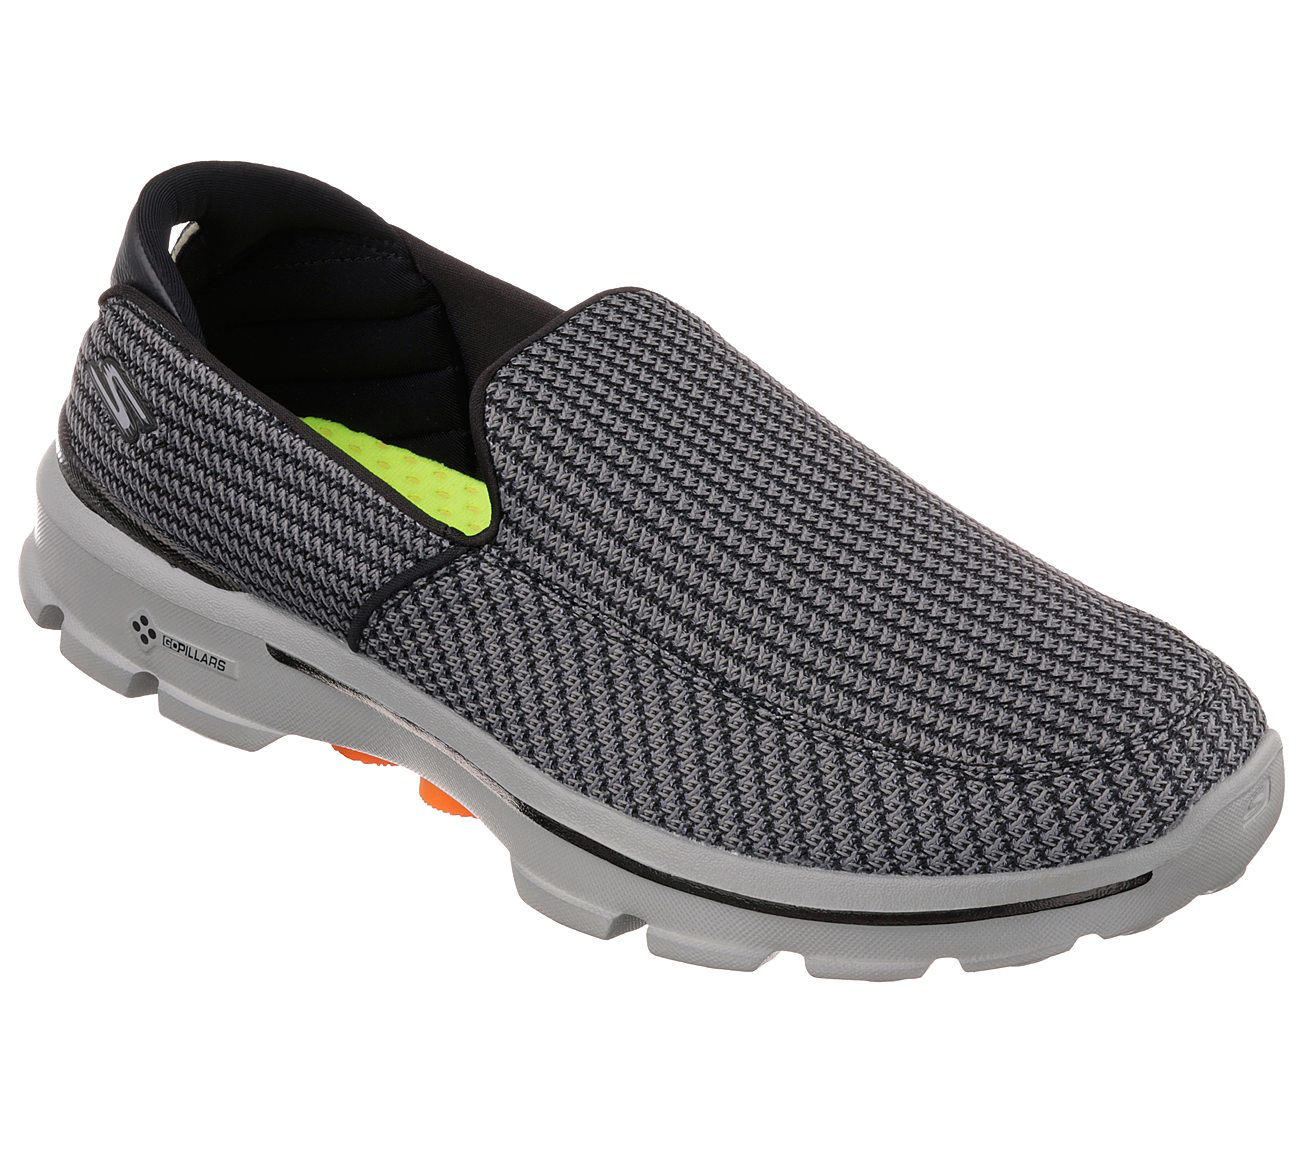 Buy SKECHERS Skechers GOwalk 3 Skechers Performance Shoes only  75.00 5839da598c